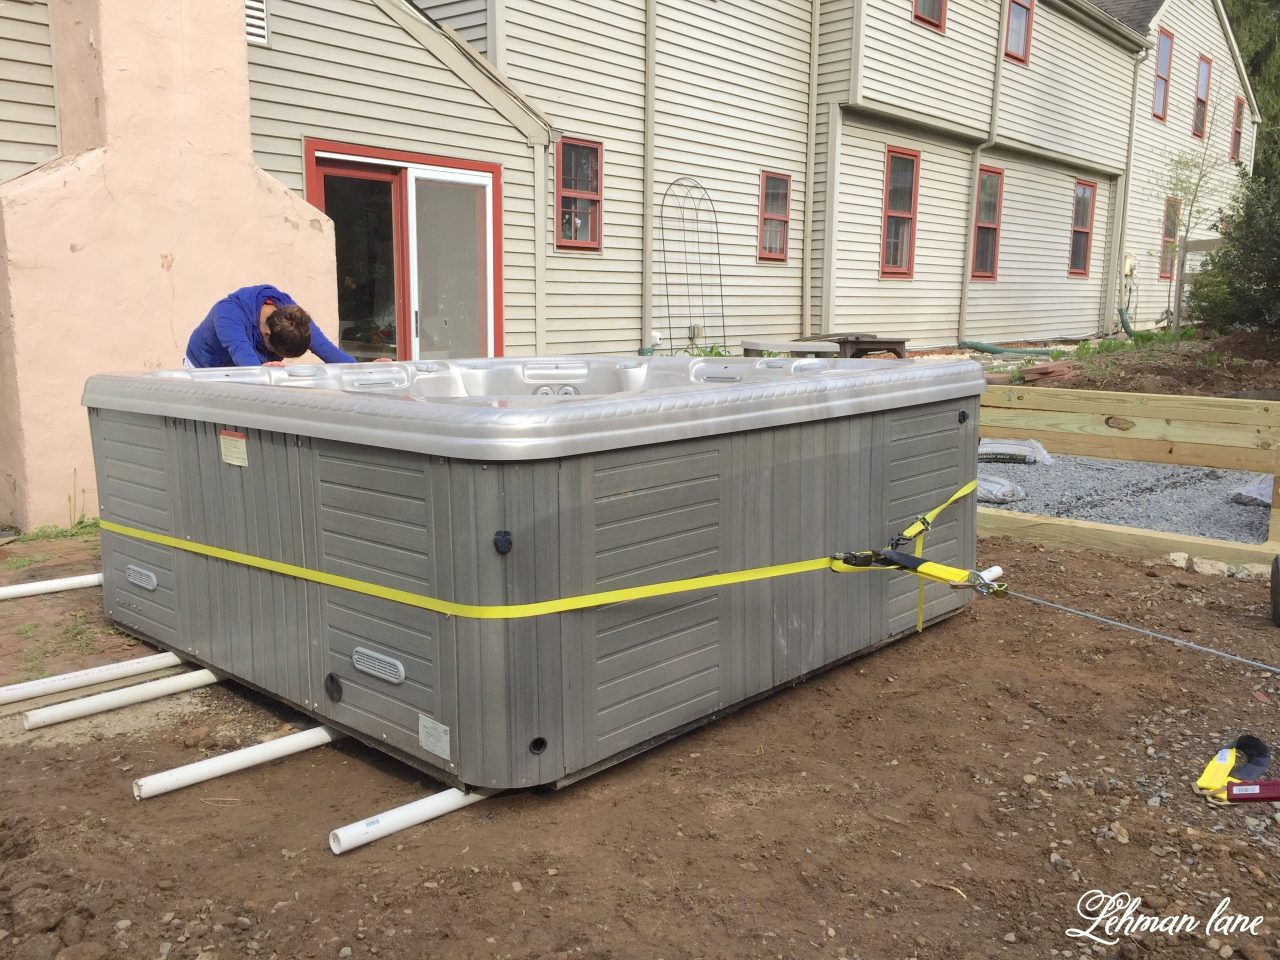 Moving A Hot Tub With Just 2 People Easy Step By Step Lehman Lane